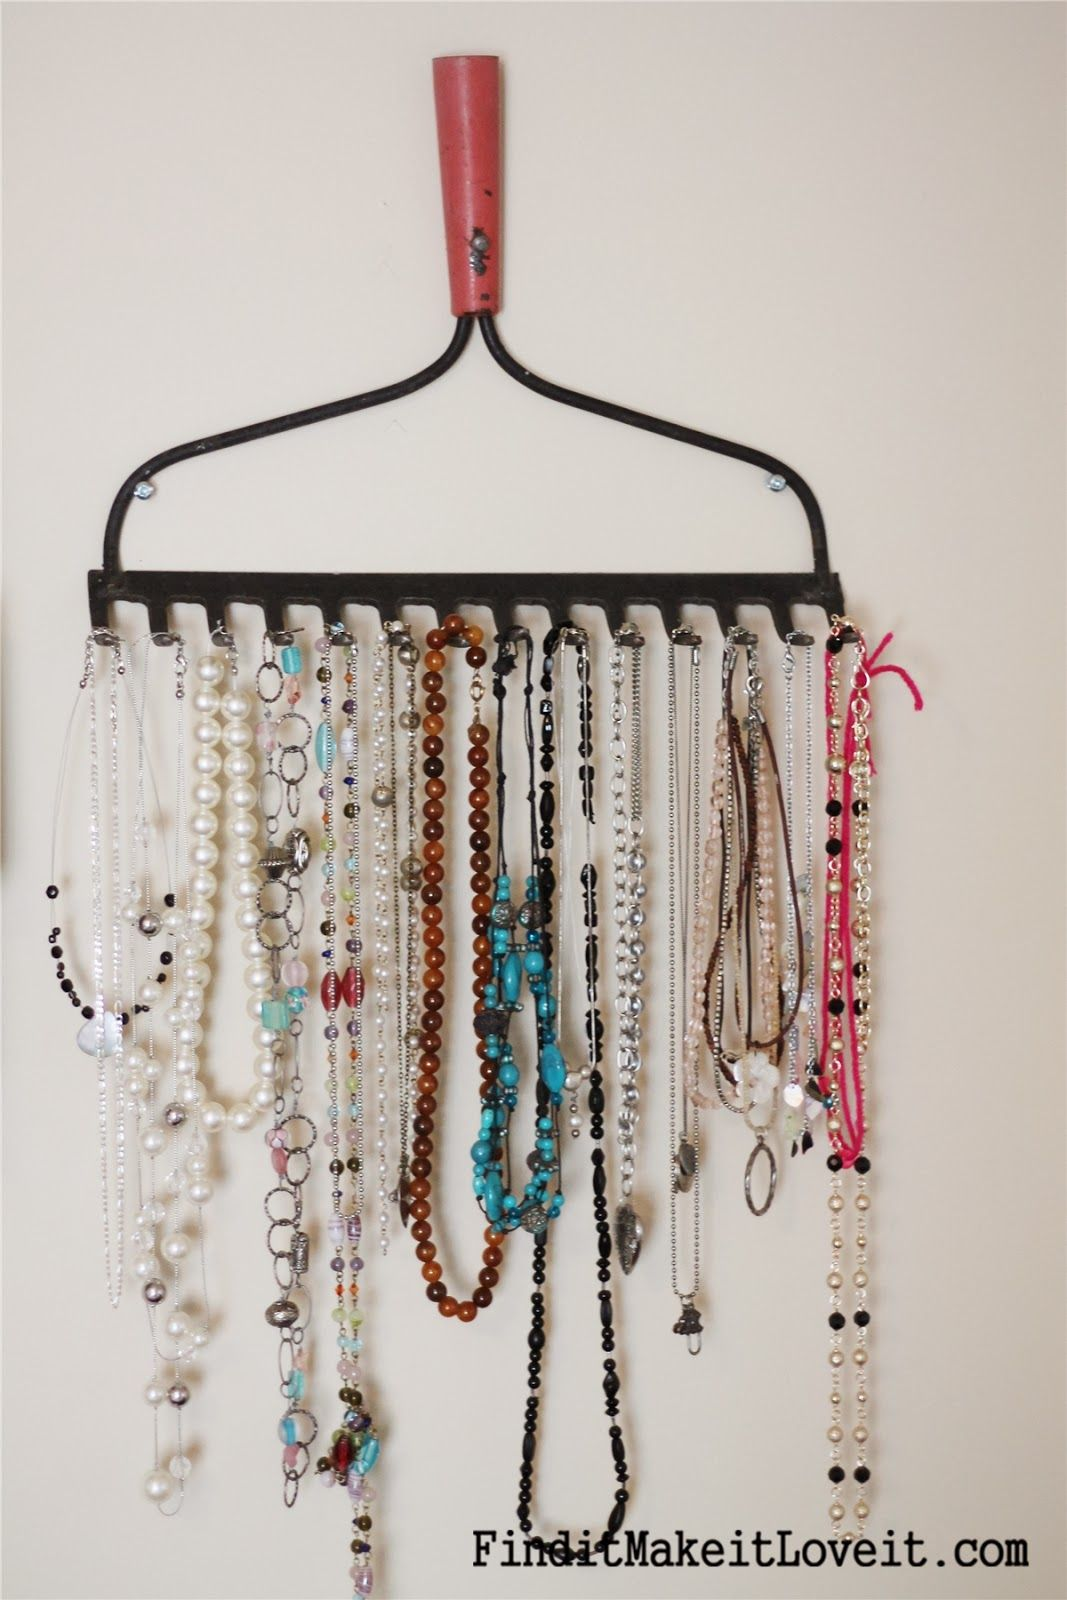 Vintage Jewelry Storage This would be awesome for hanging belts or